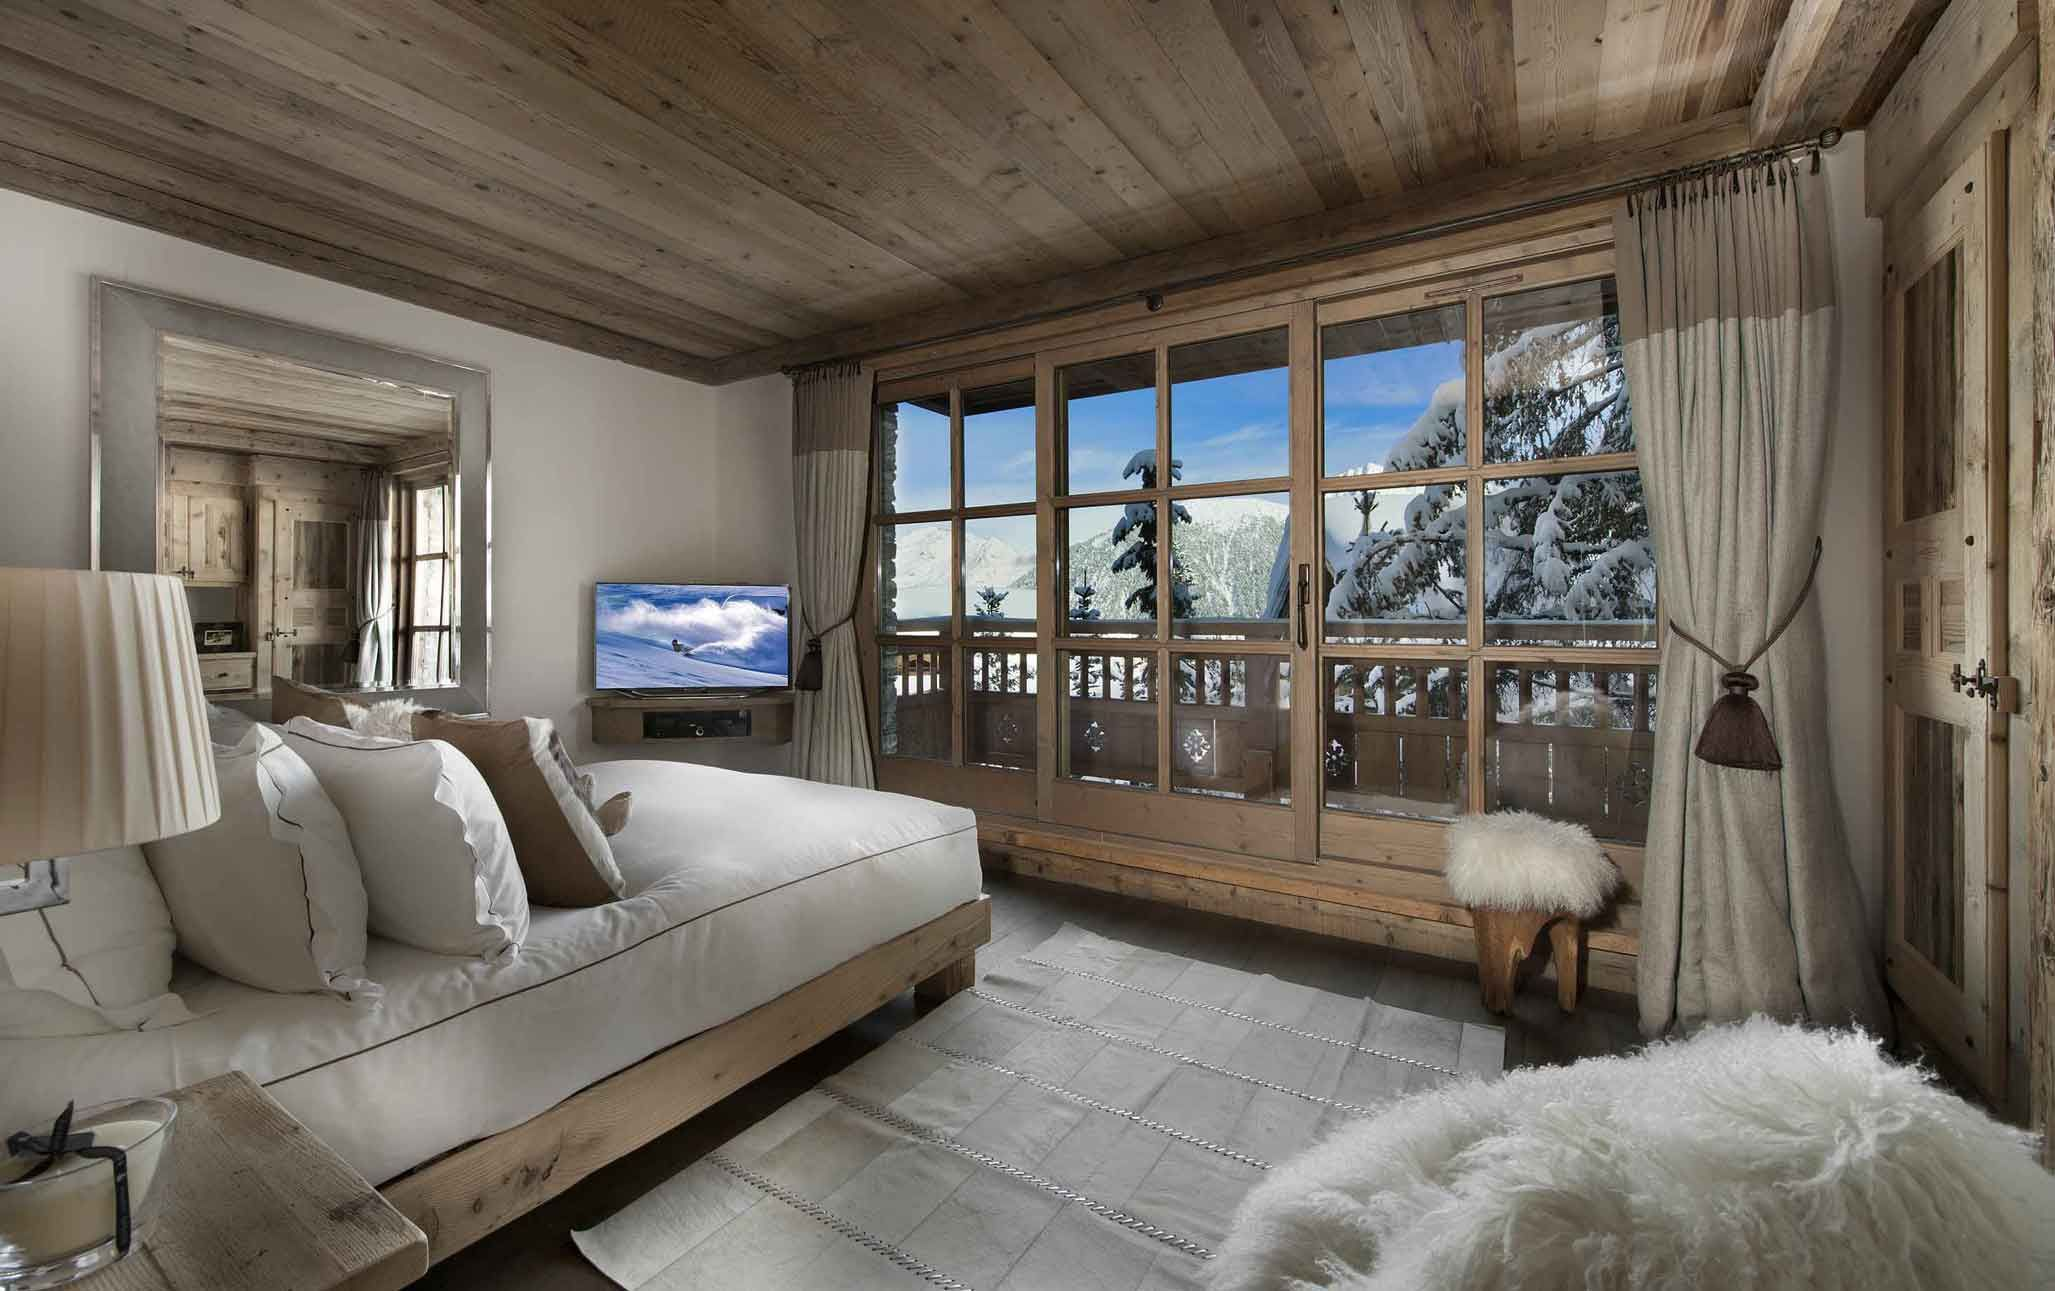 Home   Chalet Pearl - Courchevel   Adult Bedrooms   Pinterest ...